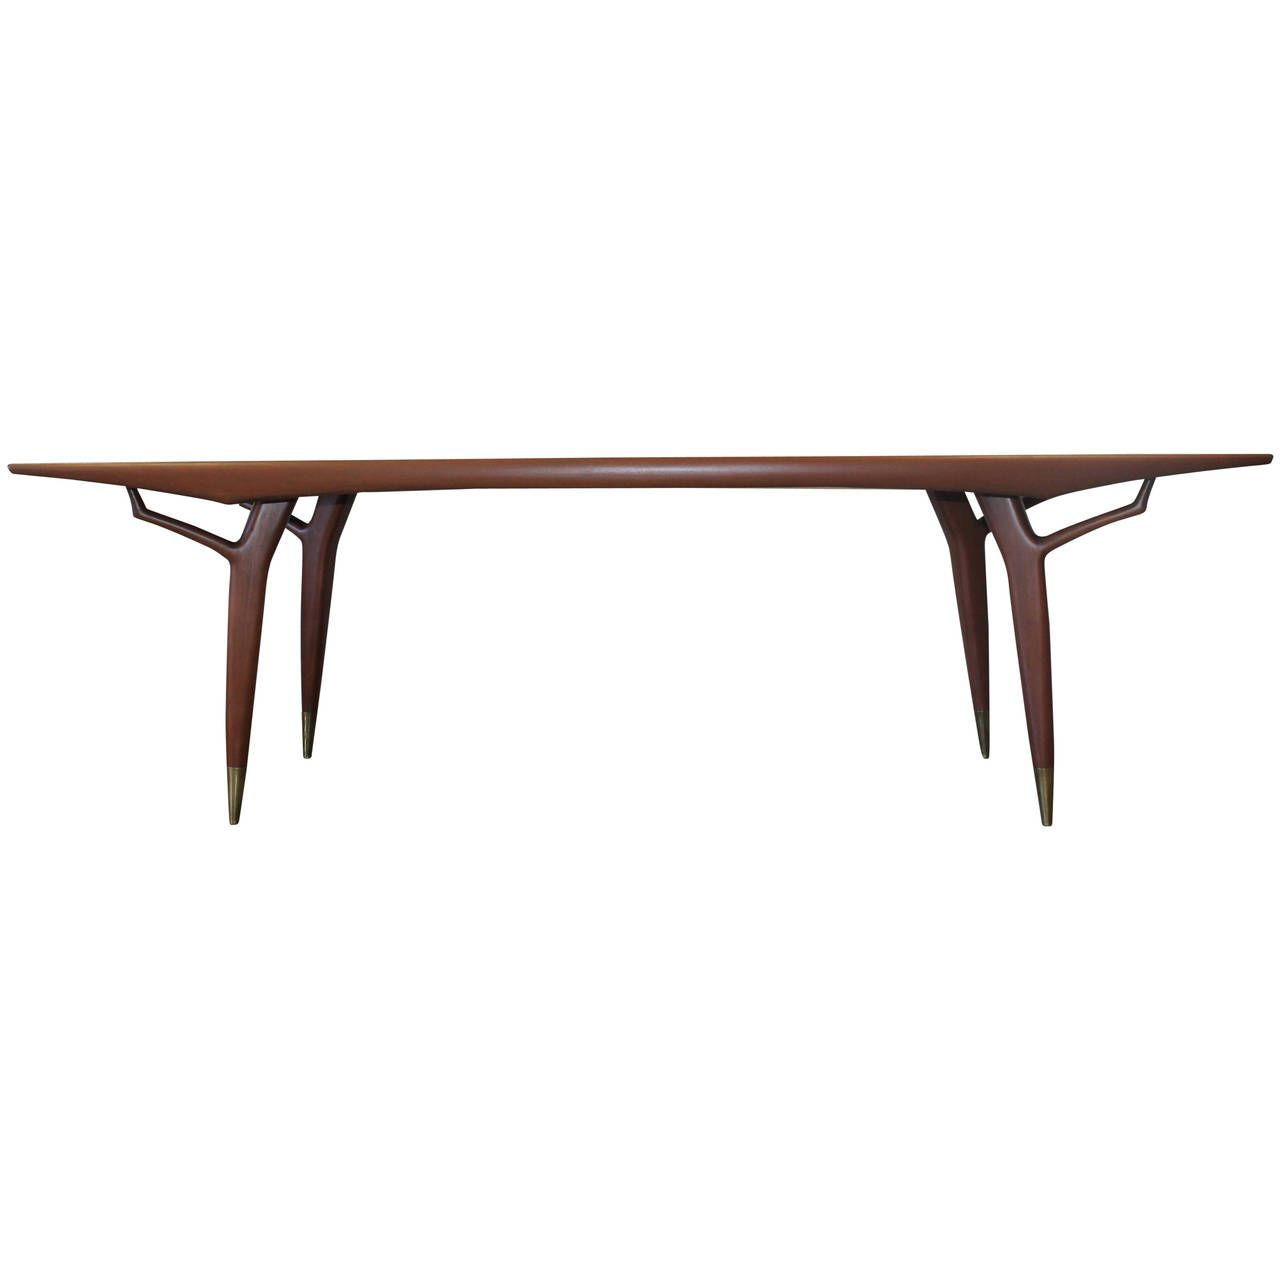 Eugenio Escudero Sculptural 8ft Dining Table, 1950s | Pinterest ...